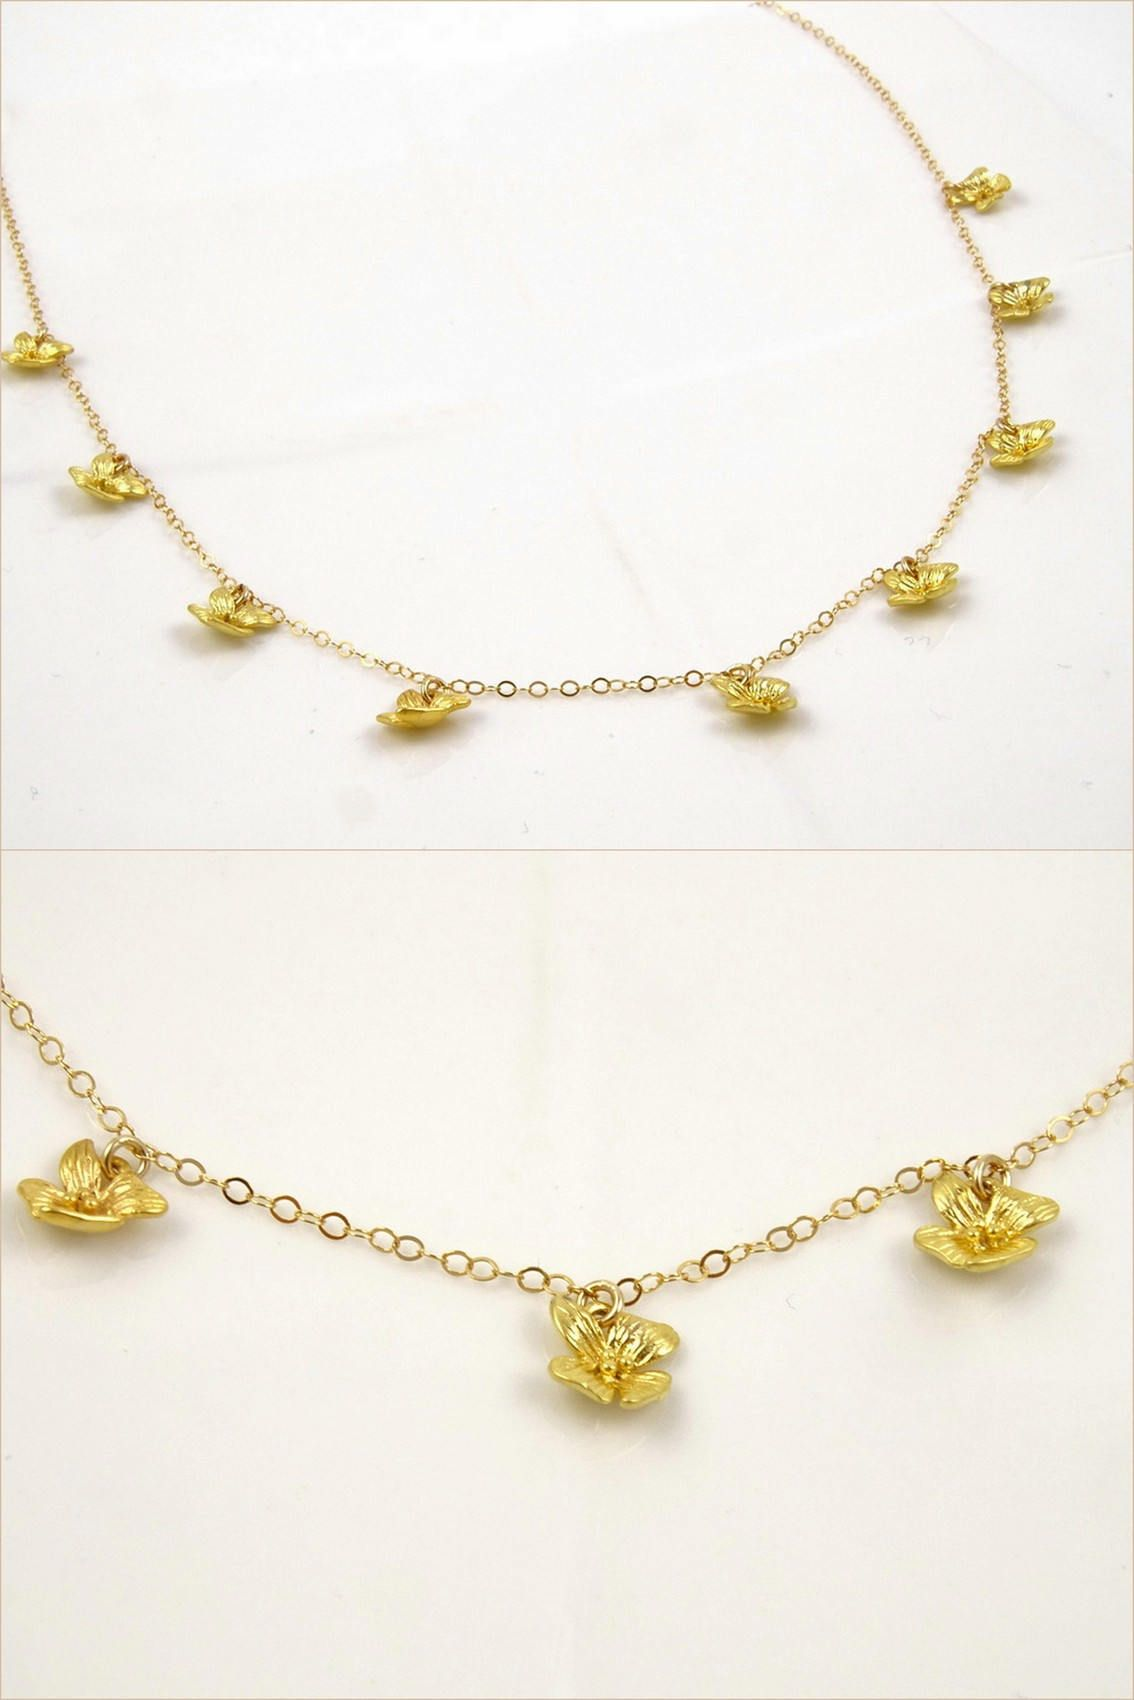 Flower Necklace Charms Great Wedding Gifts Wedding Jewelry Gold